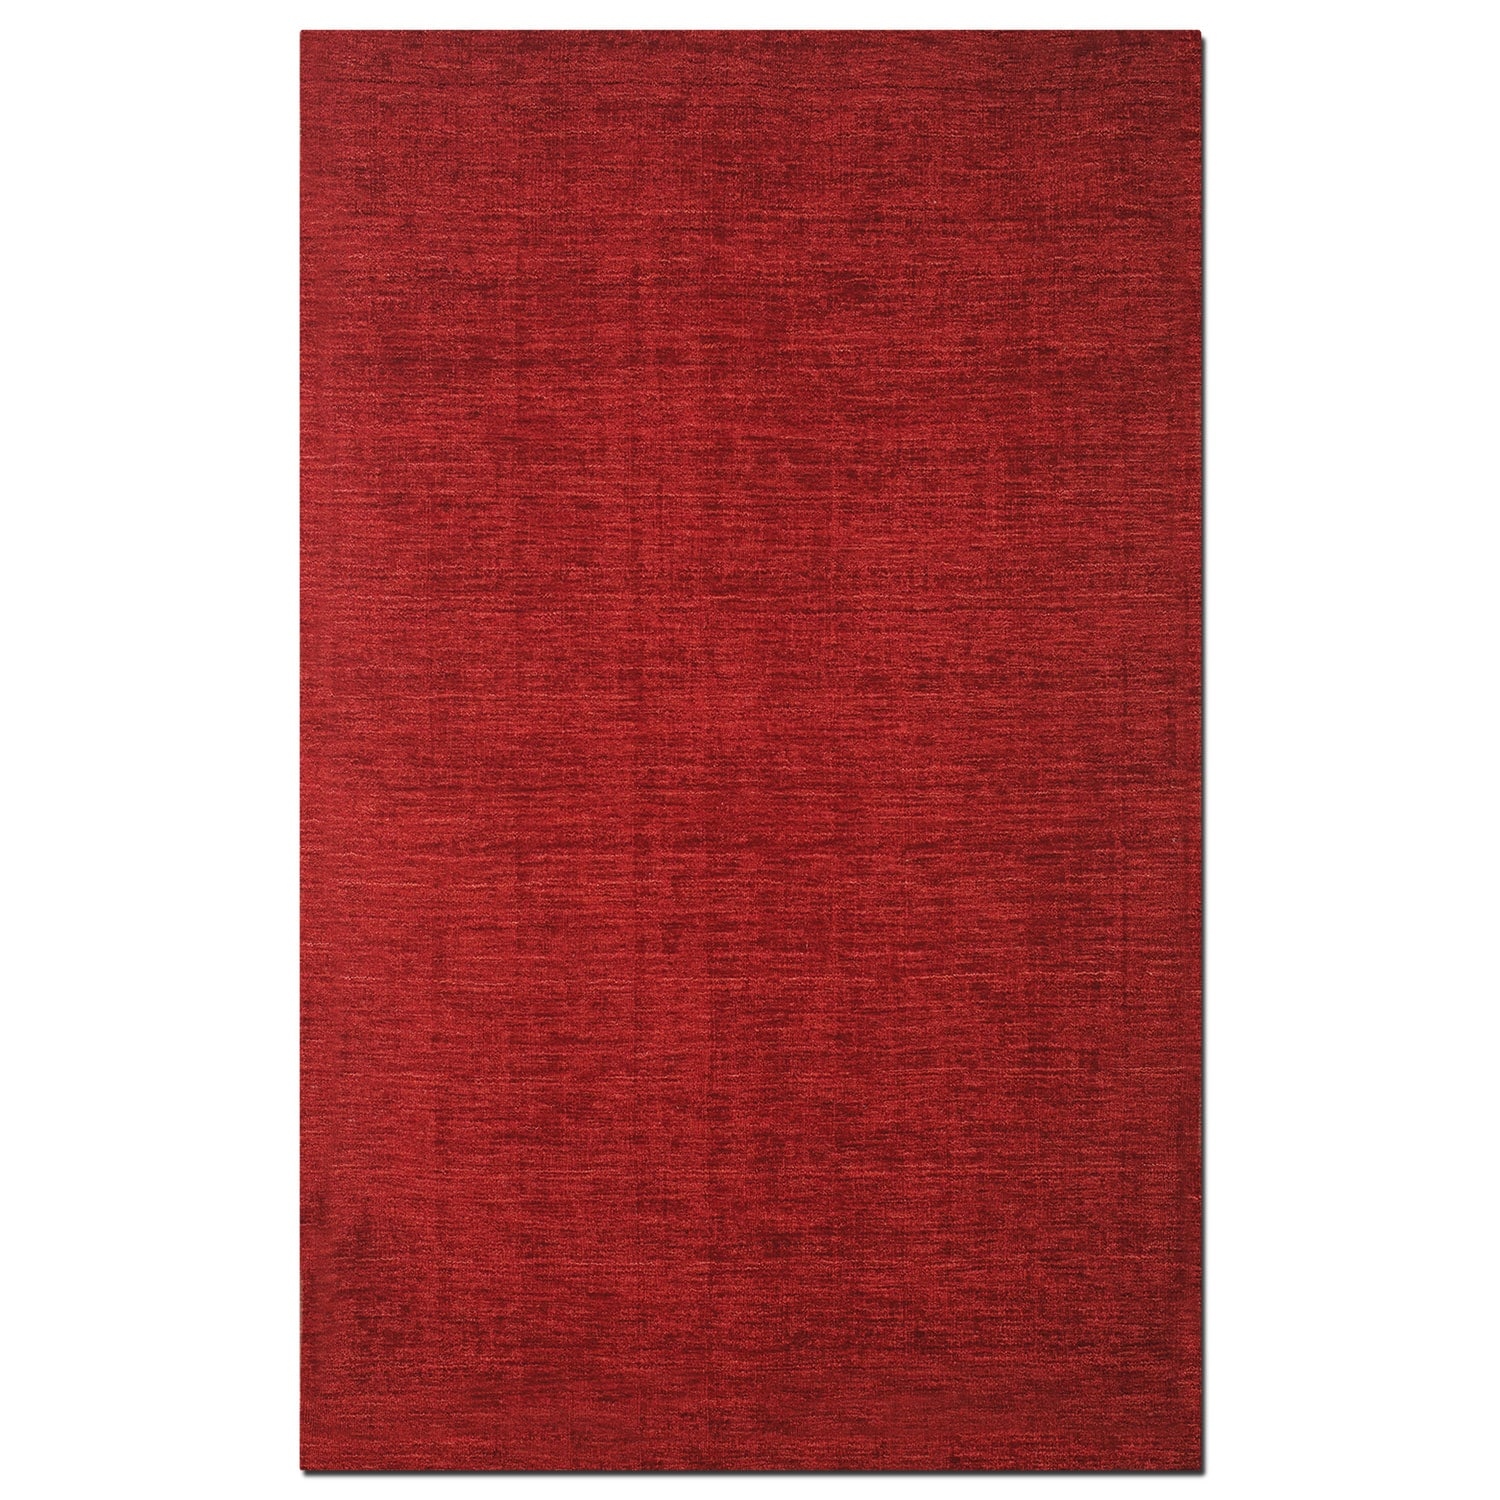 Rugs - Basics 5' x 8' Area Rug - Red